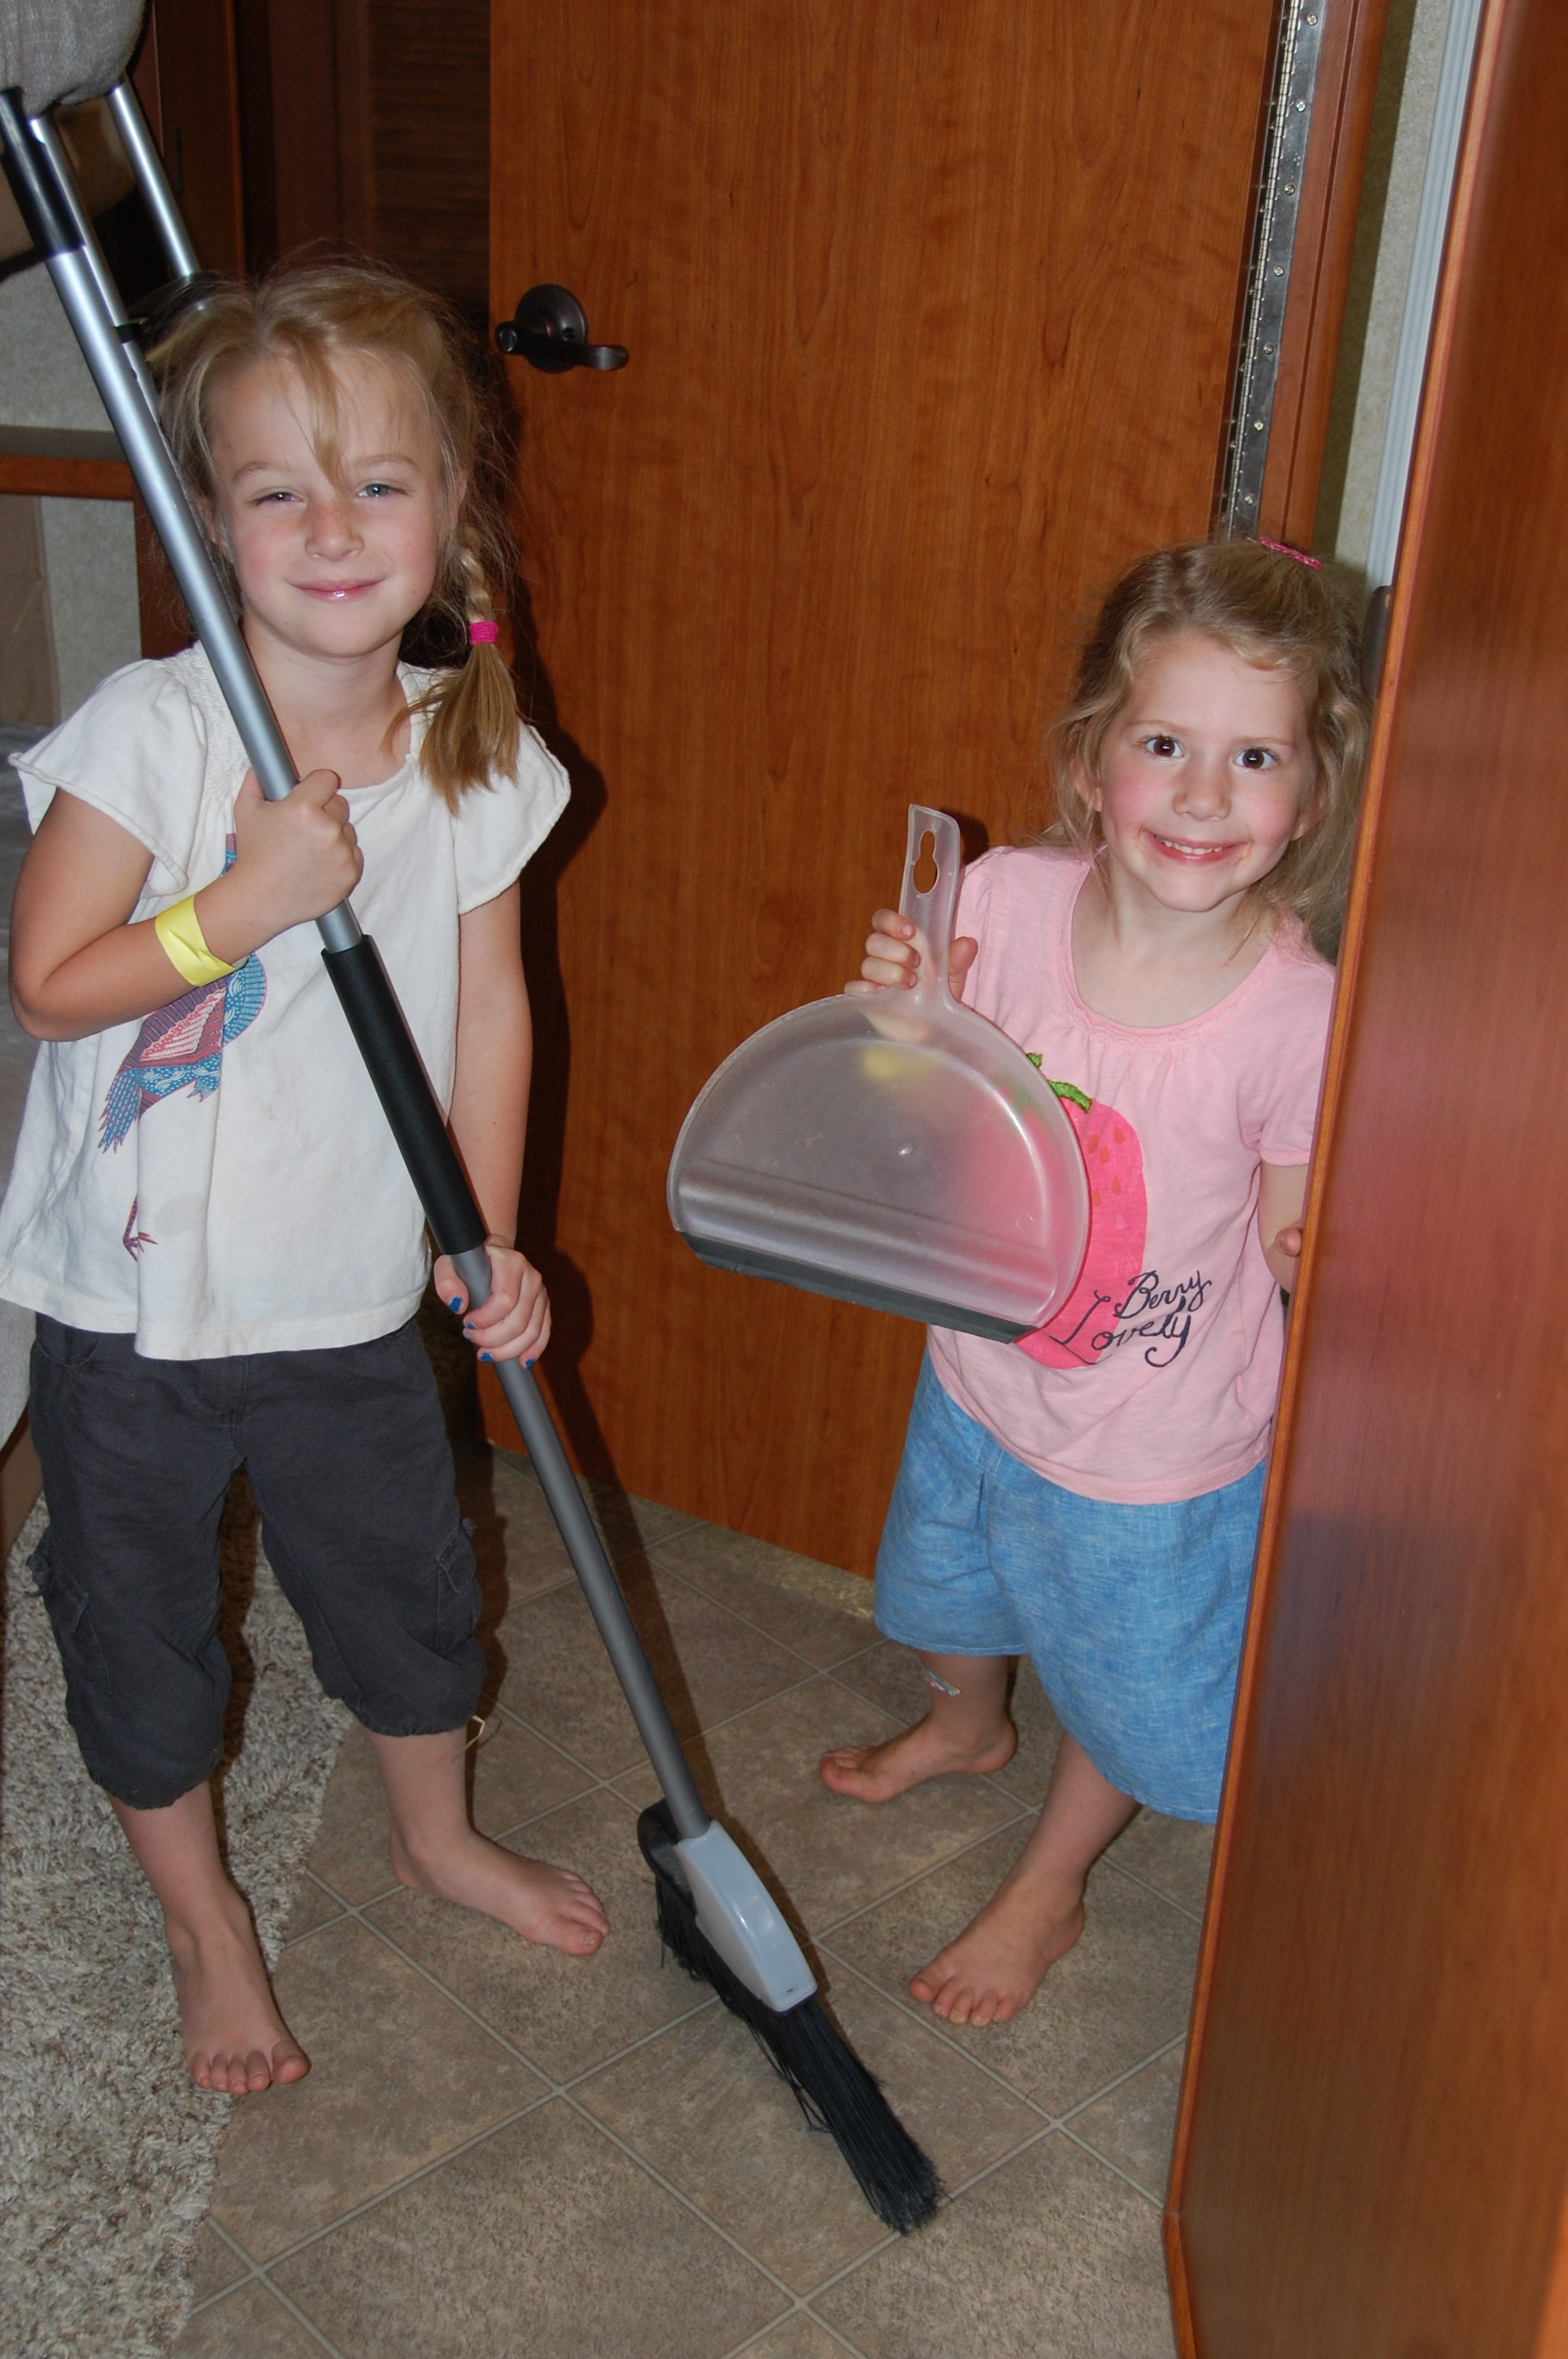 Kaylin & Gwenyth decided to play house and clean the motorhome before Lloyd & Linda and Granddaddy & Grandmommy arrived. They also helped dry dishes. Work is so much more fun in a RV!